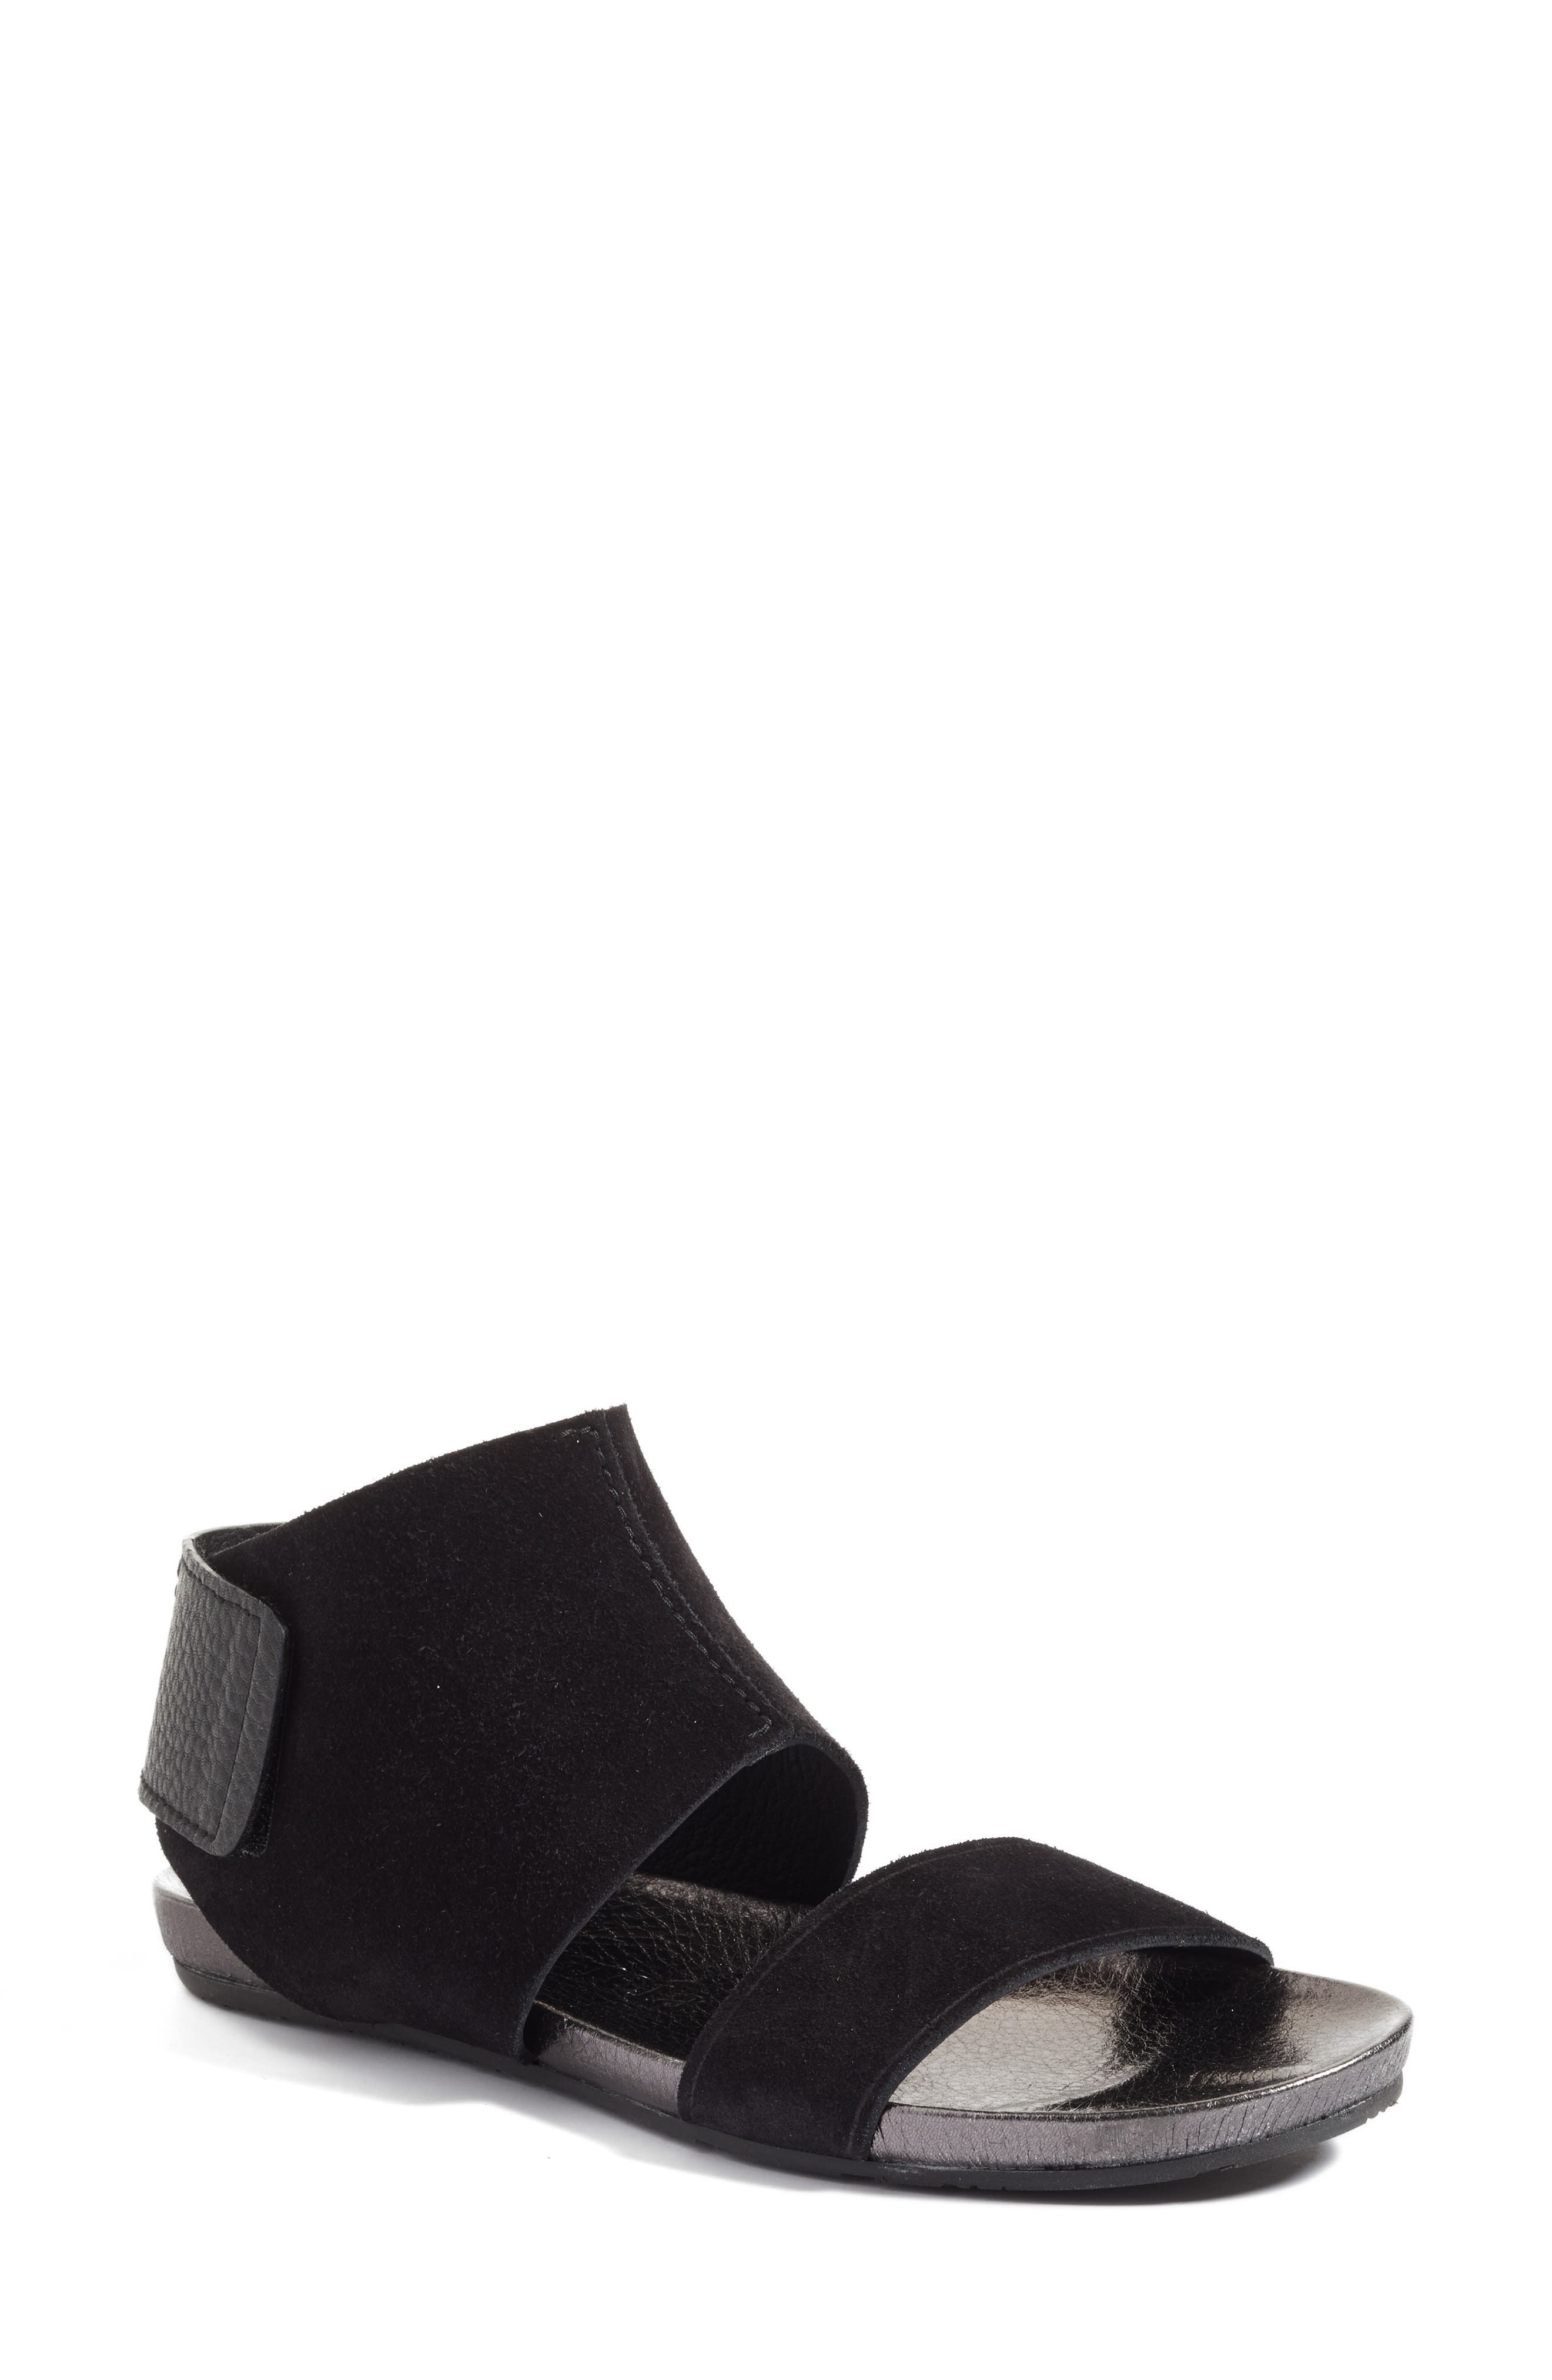 Ankle Cuff Sandal,                             Main thumbnail 1, color,                             Black Leather